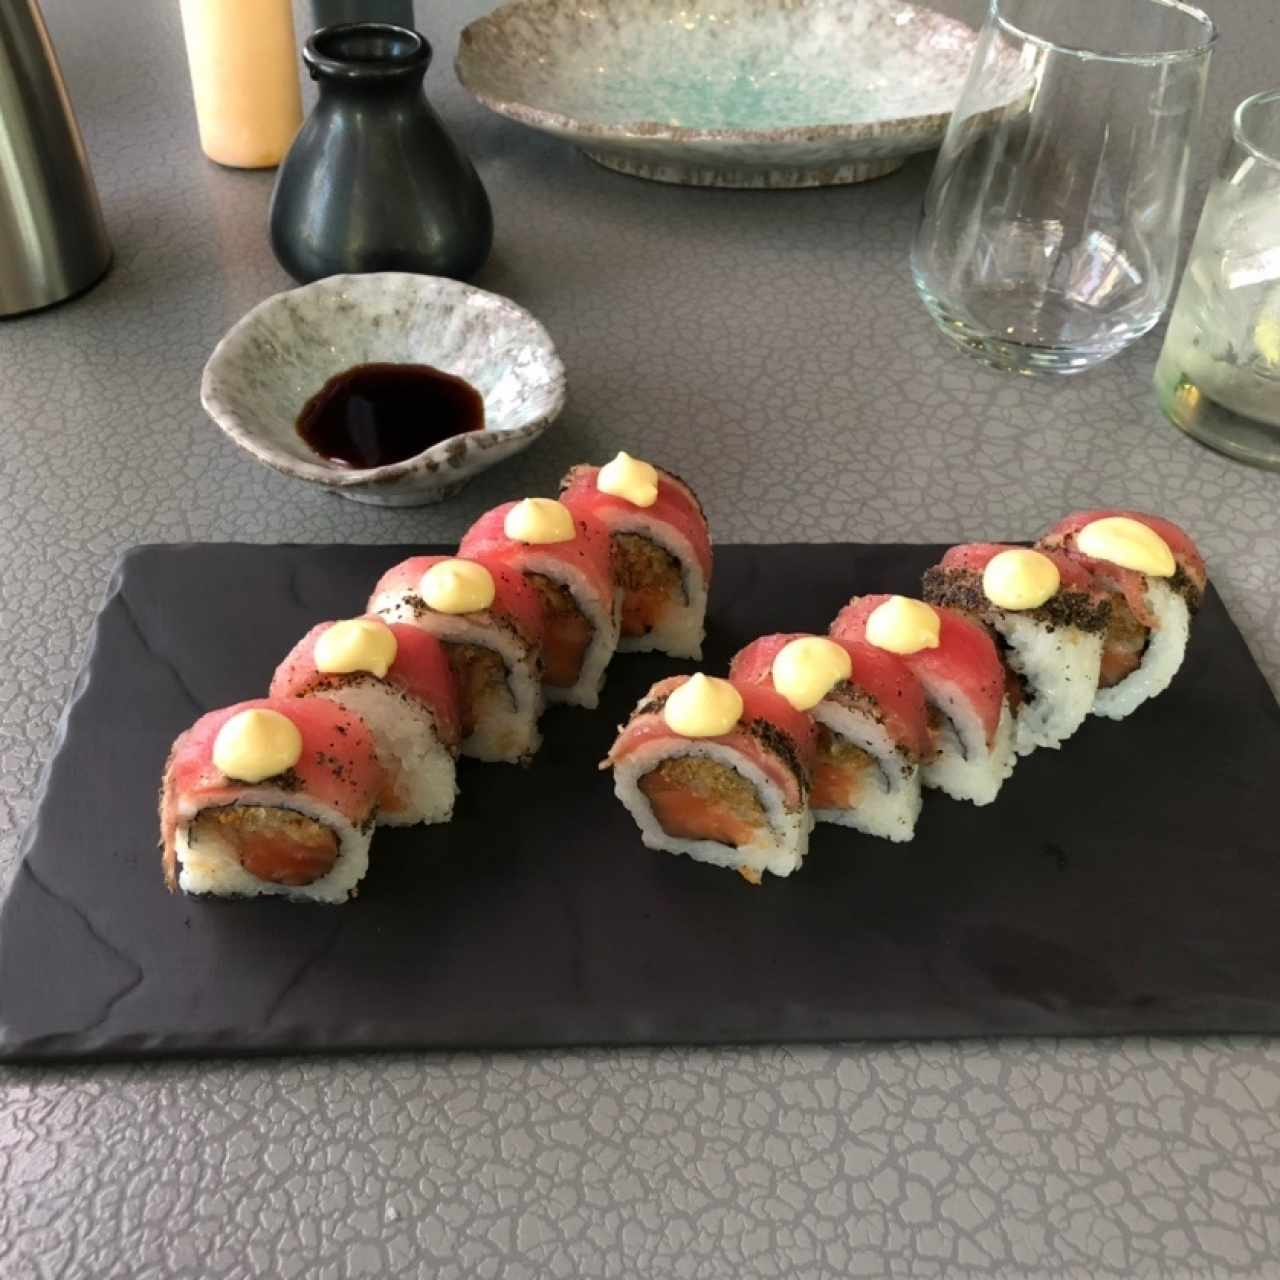 Sushi Bar - KAVA roll, a good example of fusion sushi, like it.